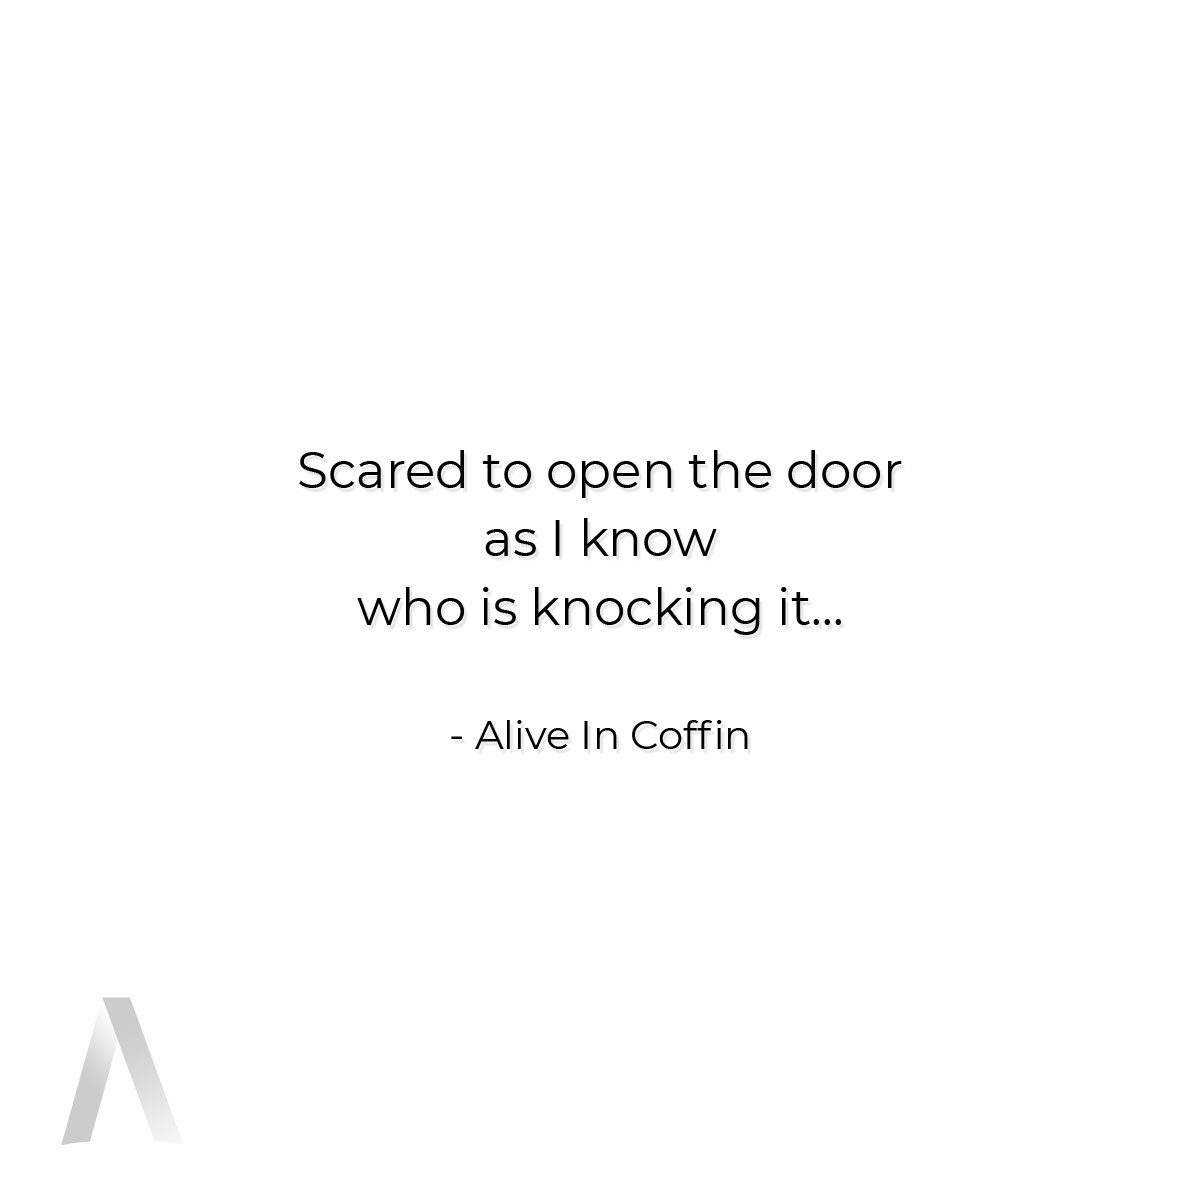 Scared To Open is a short dark poem written by Alive In Coffin